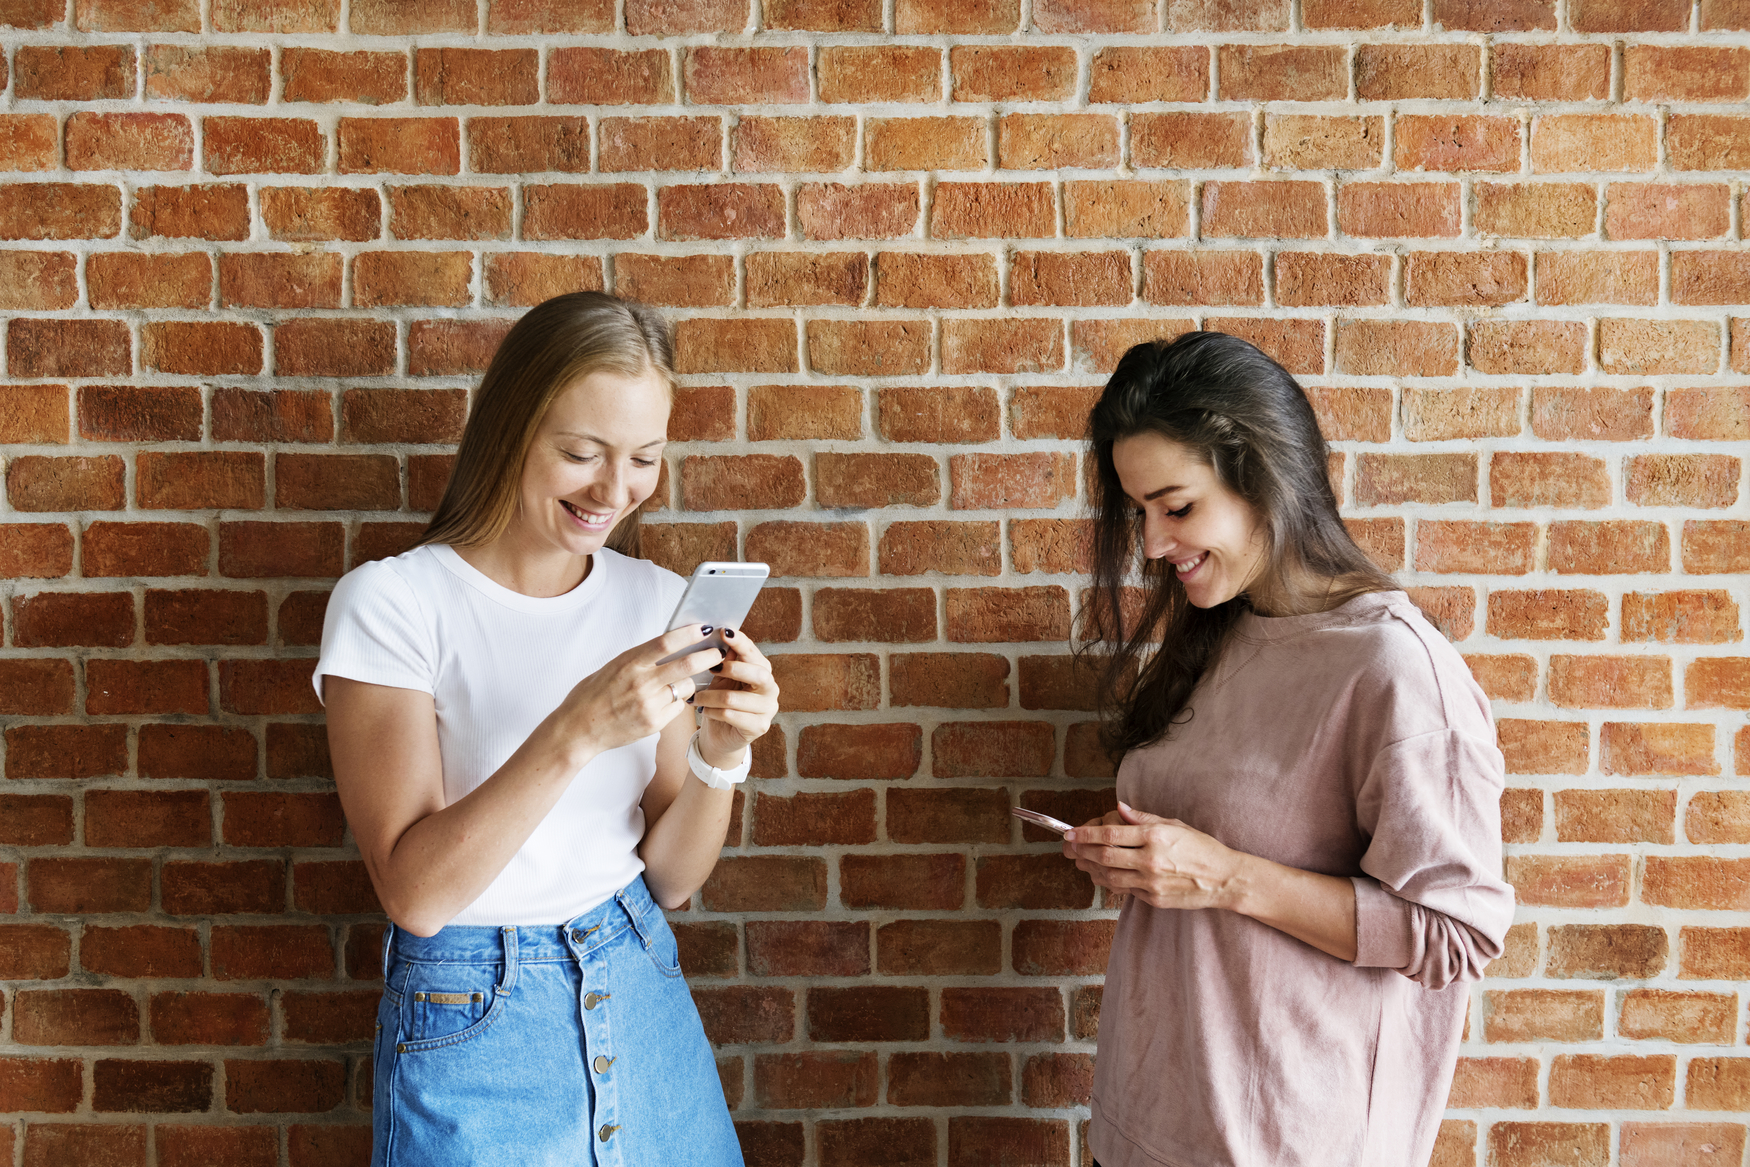 Gen Z Consumers Are All About Technology - Microswift